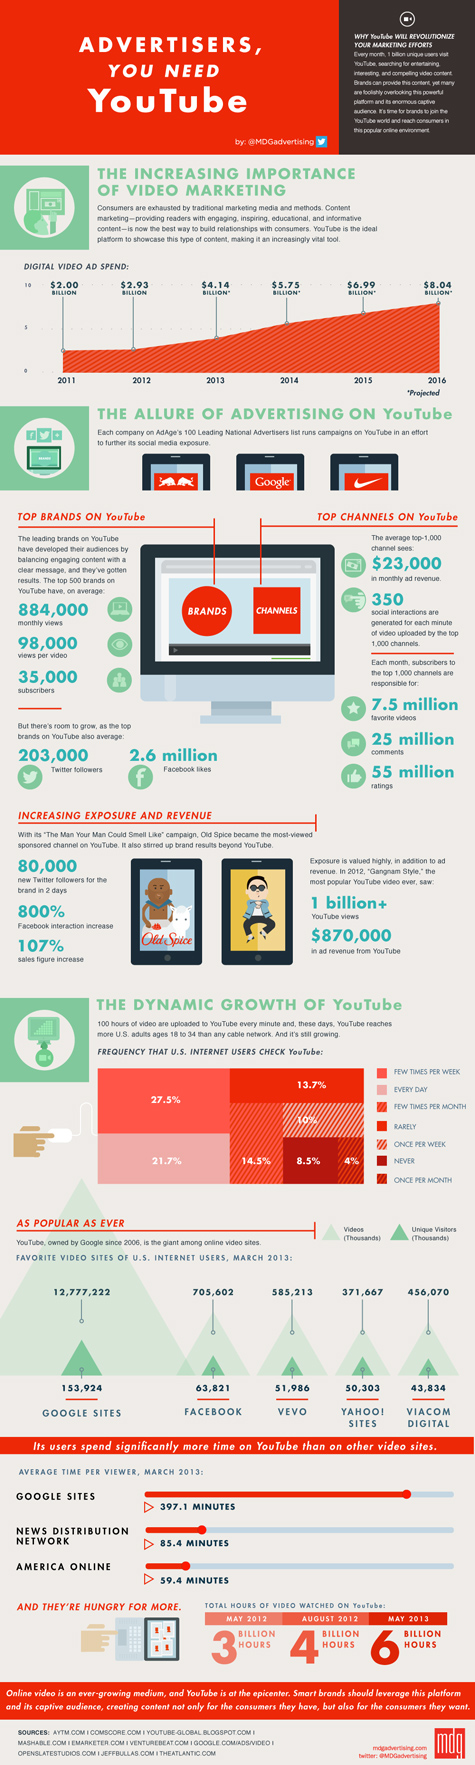 infographic advertisers you need youtube 475